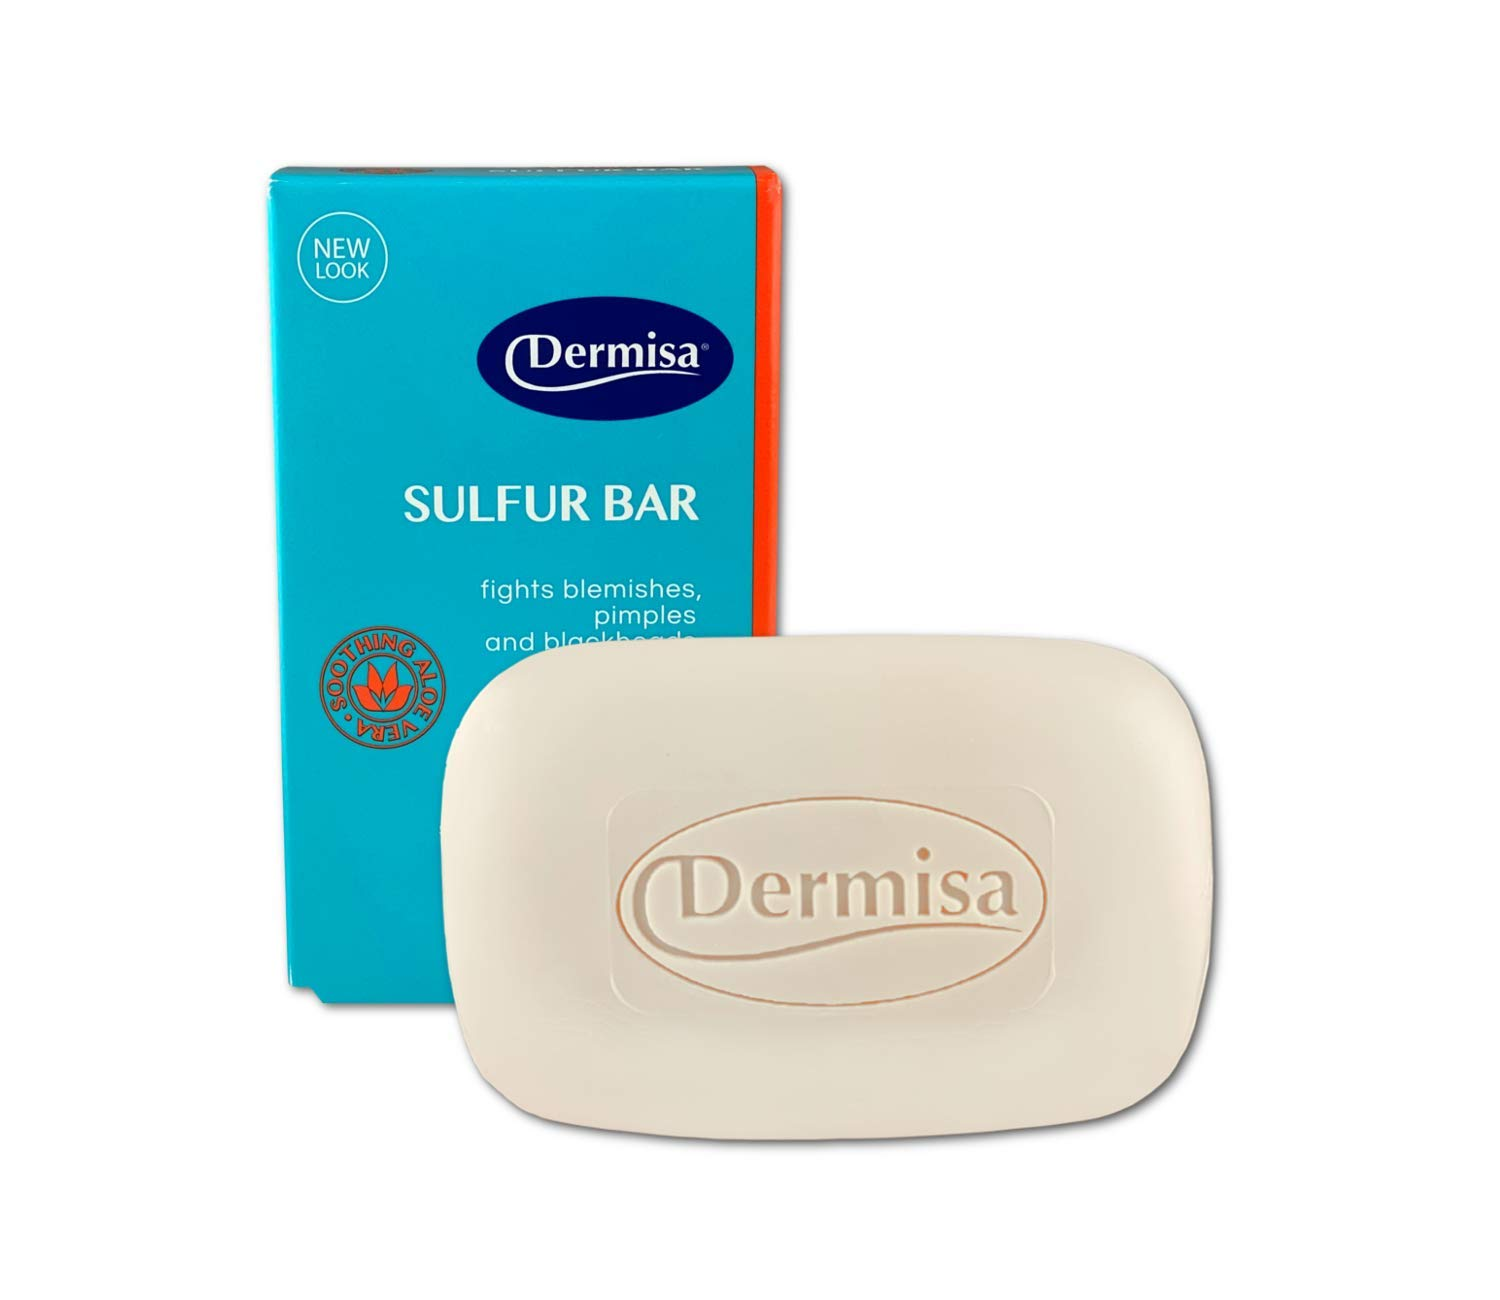 Dermisa Sulfur Bar with Aloe Vera   Helps to Cleanse Oily Acne-Prone Skin and Unclog Pores   Contains Sulfur + Aloe Vera 3 OZ   NO PARABENS, NO ANIMAL TESTING, 100% VEGETABLE BASE   Pack of 1